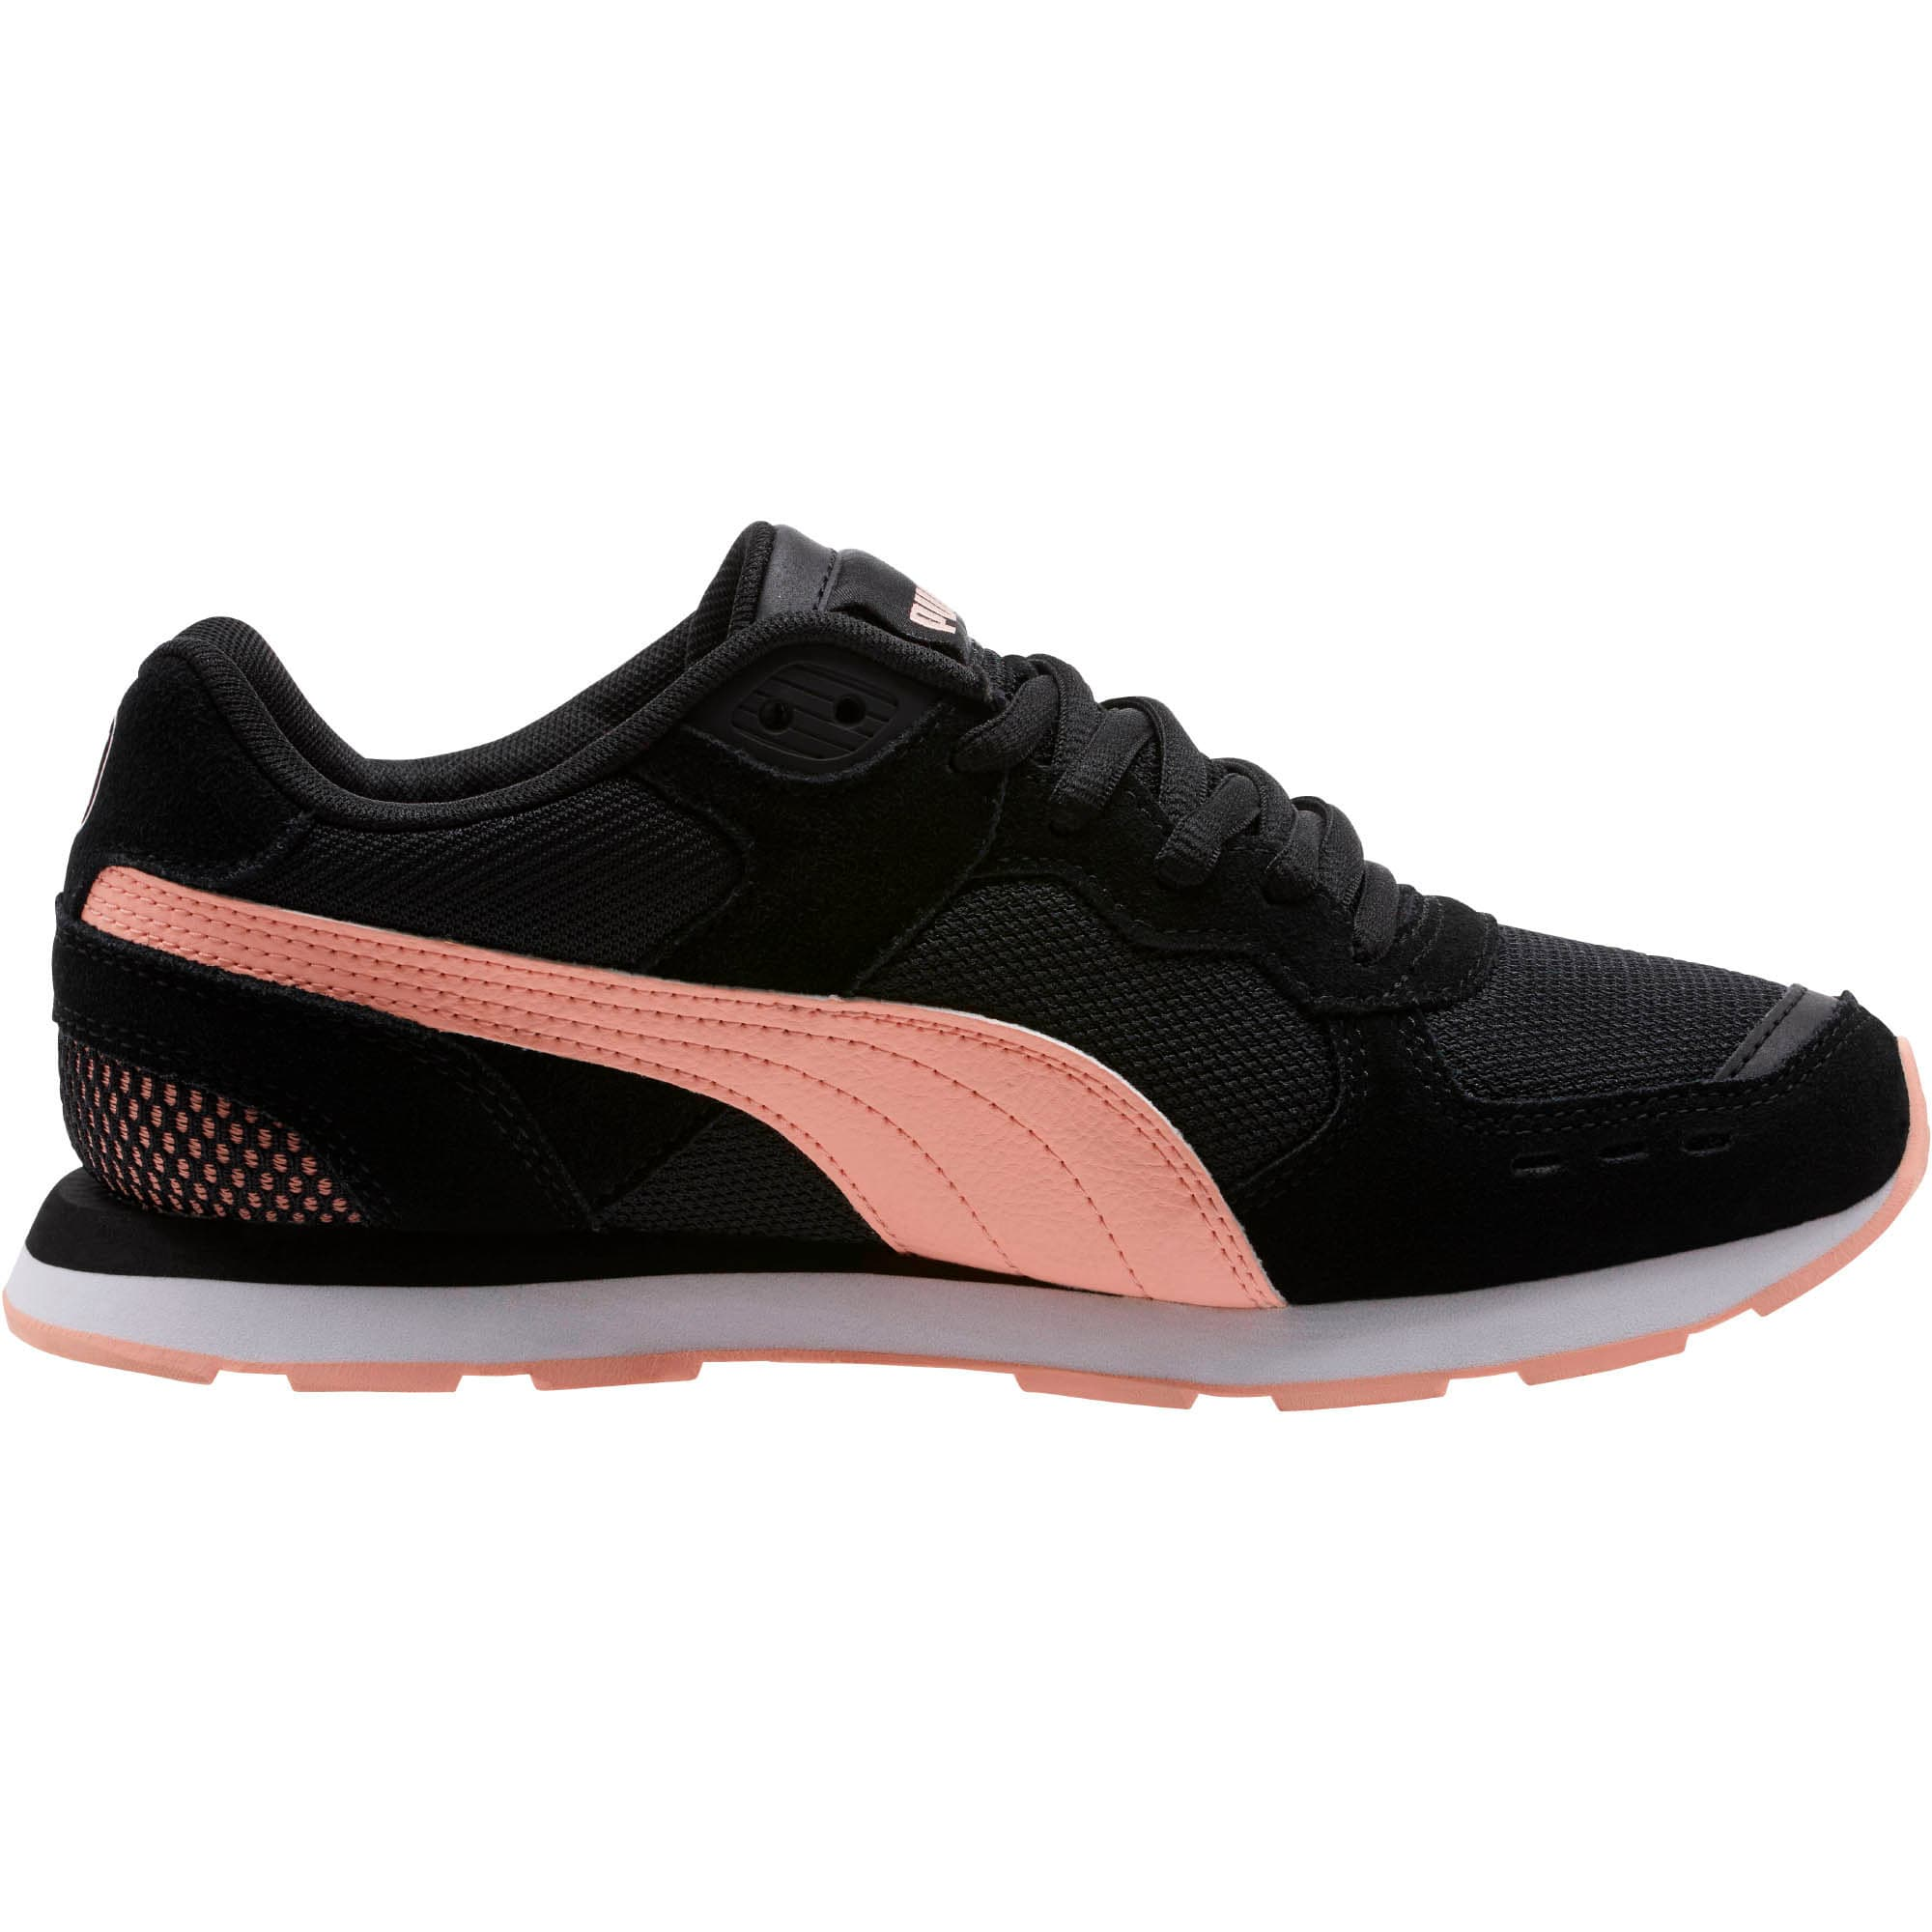 Thumbnail 4 of Vista Women's Sneakers, Puma Black-Peach Bud, medium